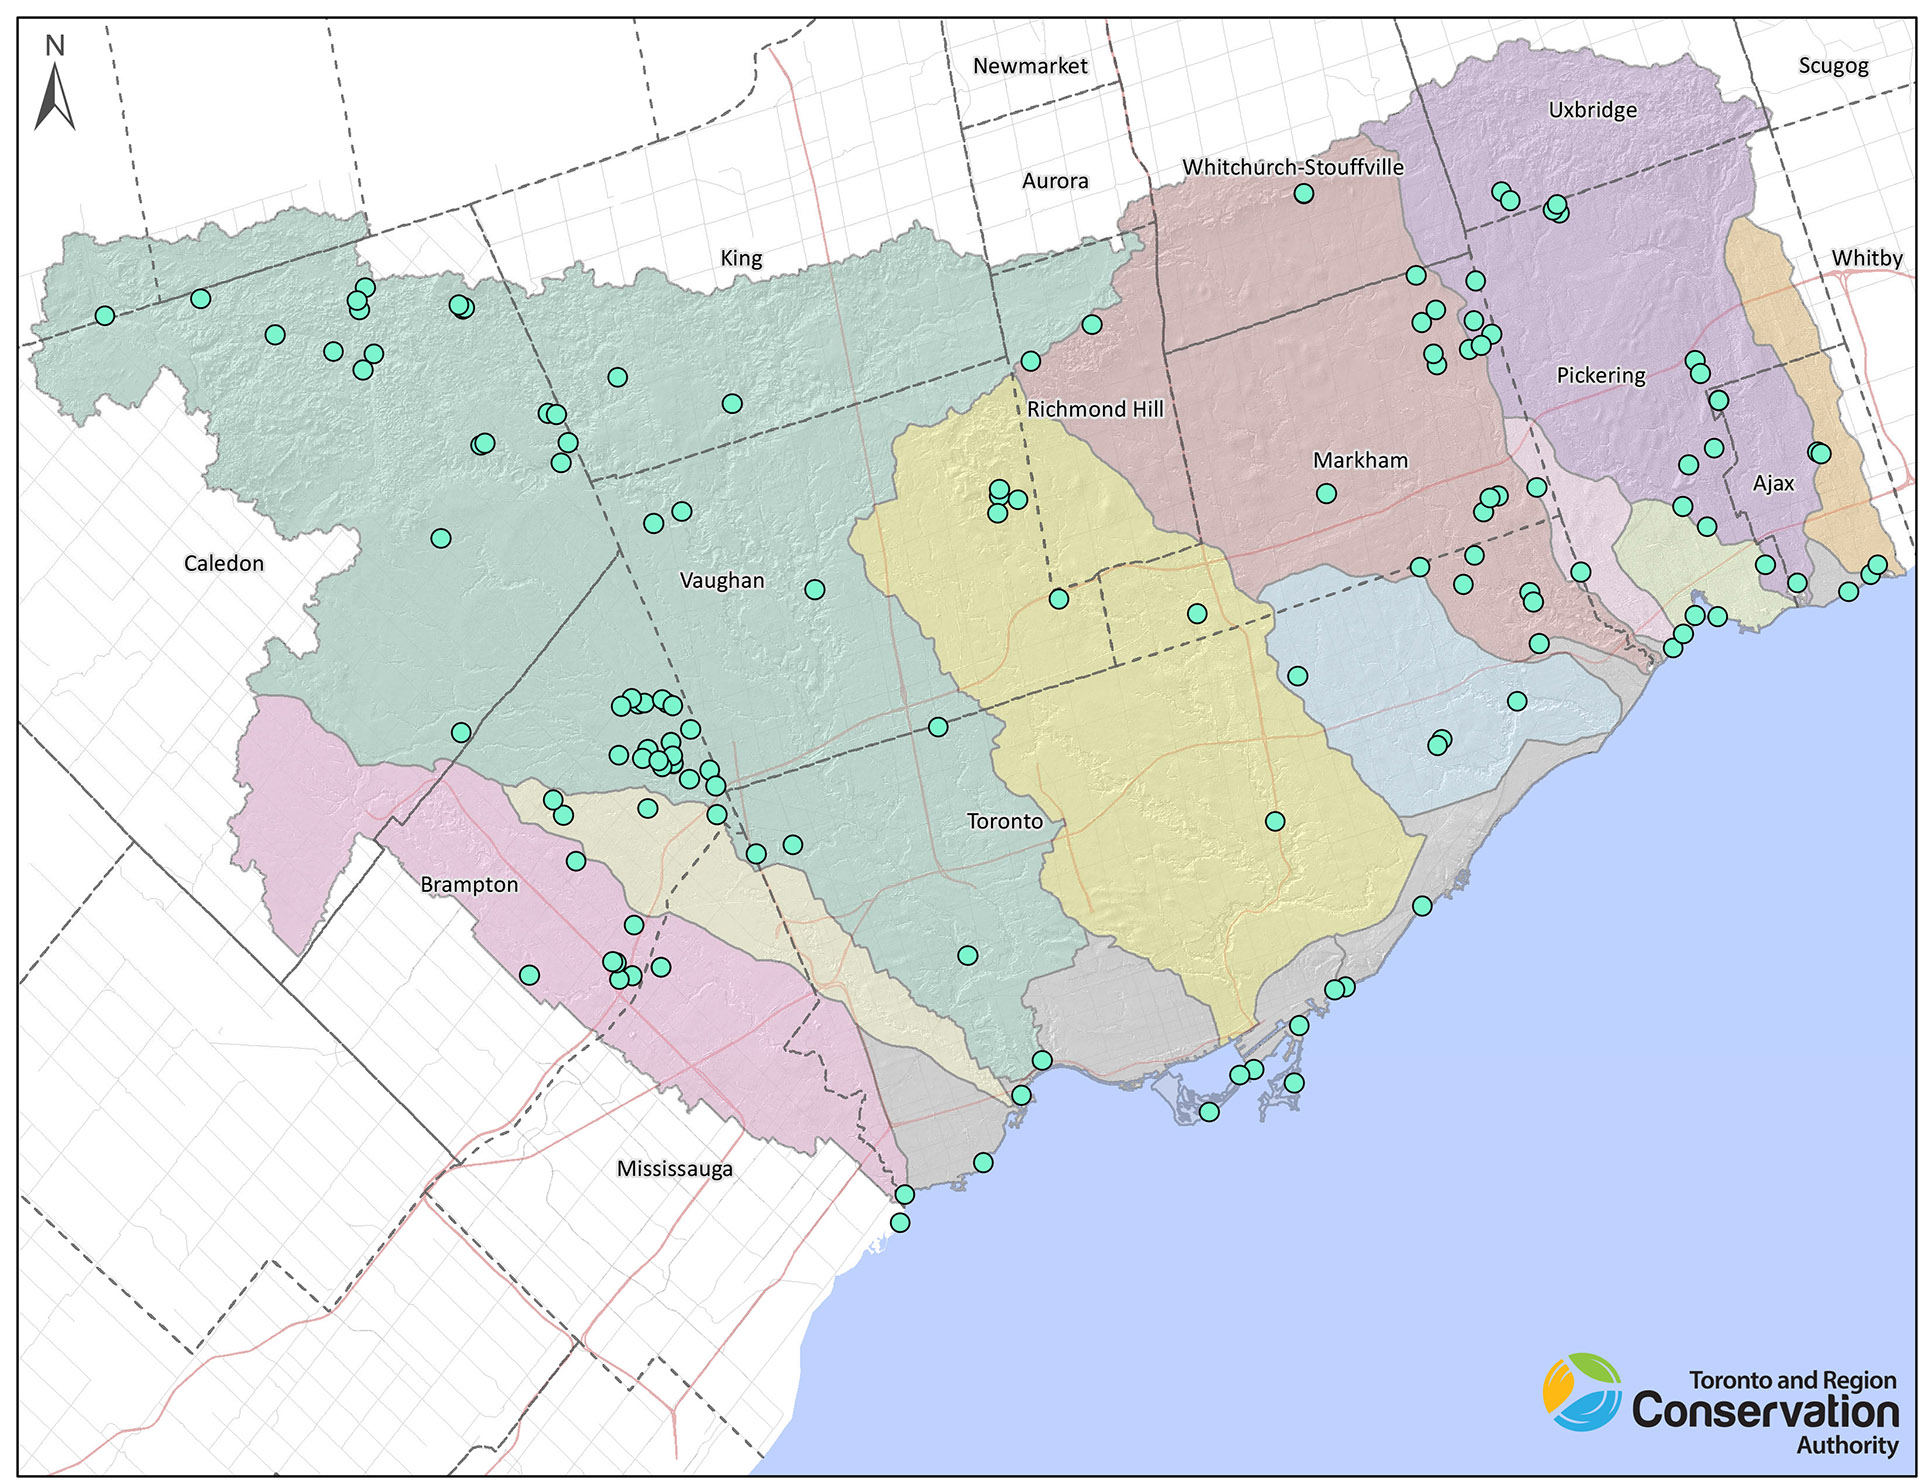 TRCA restoration projects map